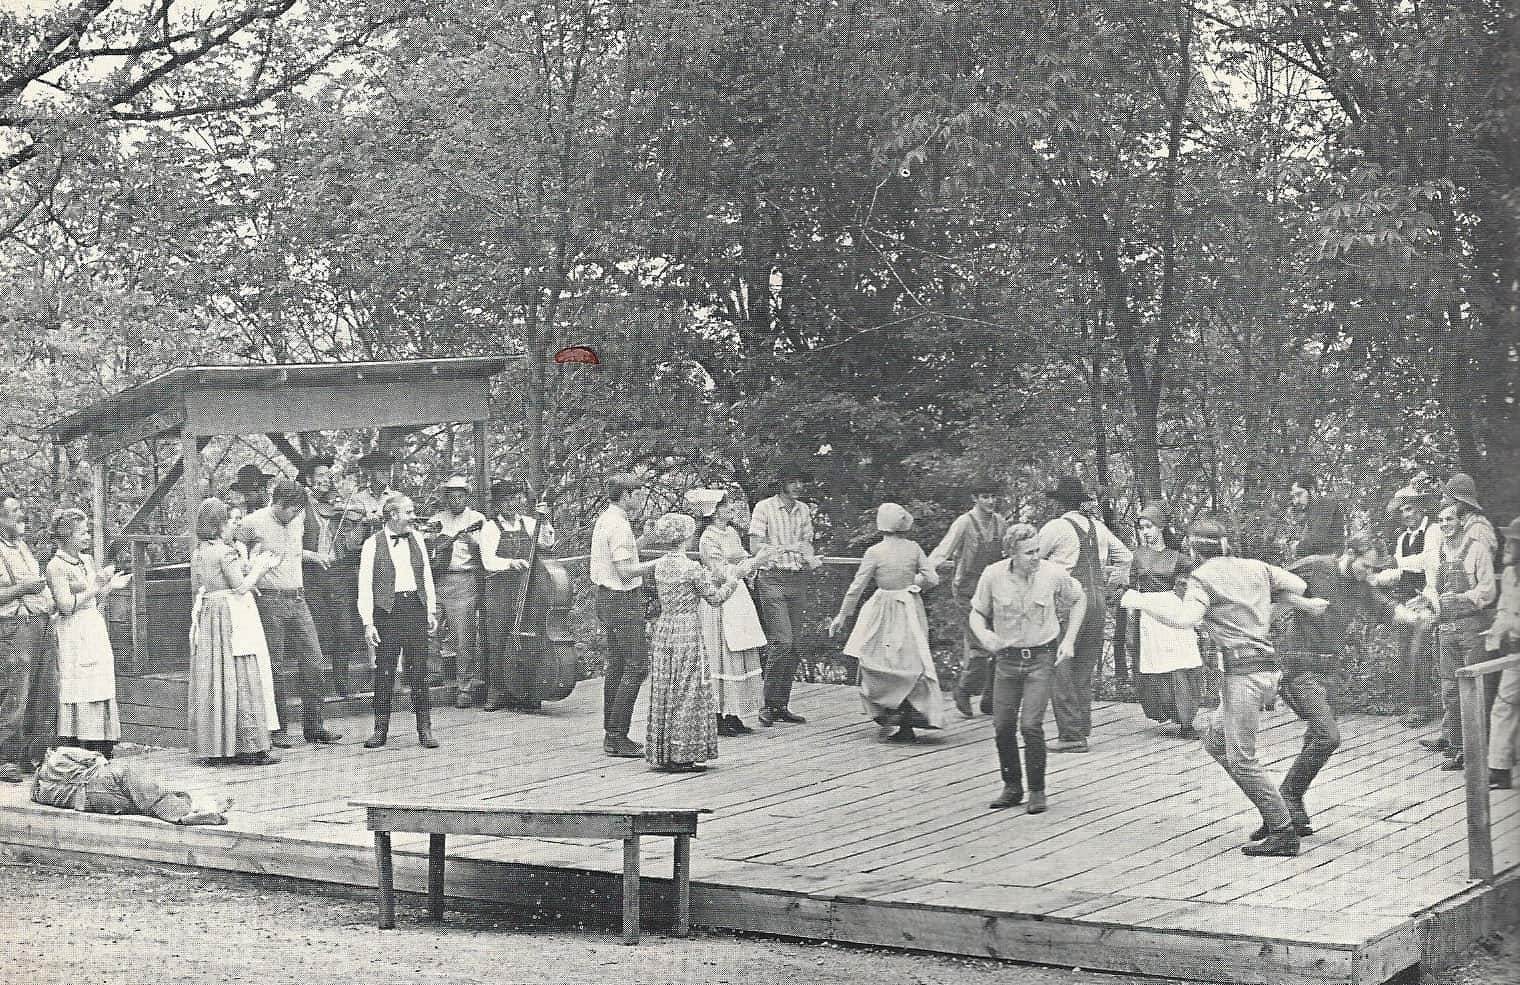 Old photo of people dancing on wooden platform